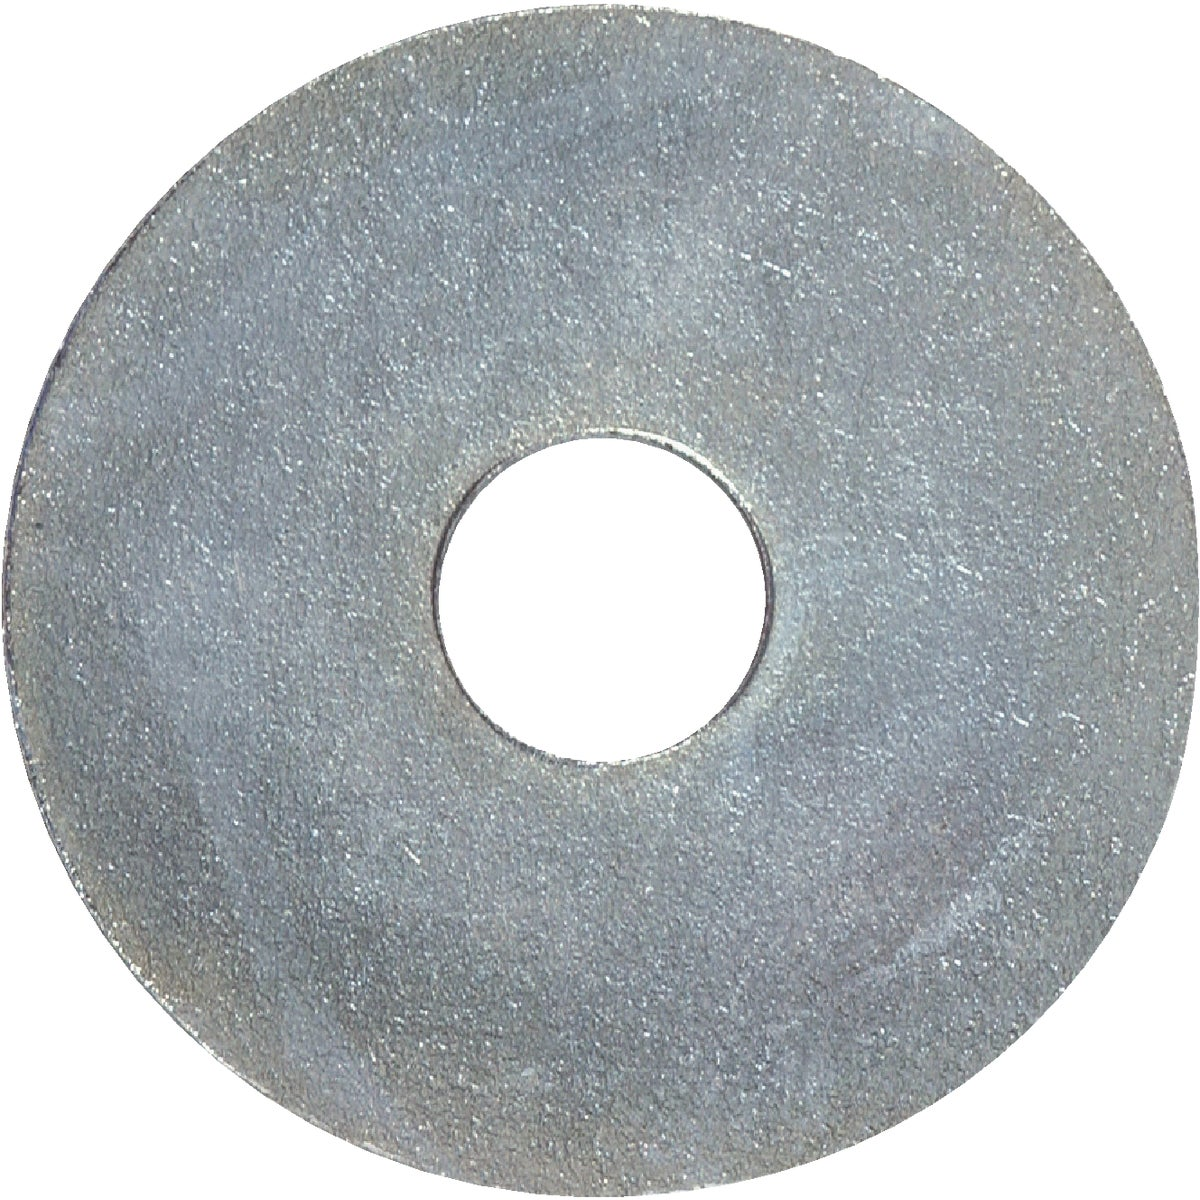 3/16X1-1/4 FENDER WASHER - 290006 by Hillman Fastener